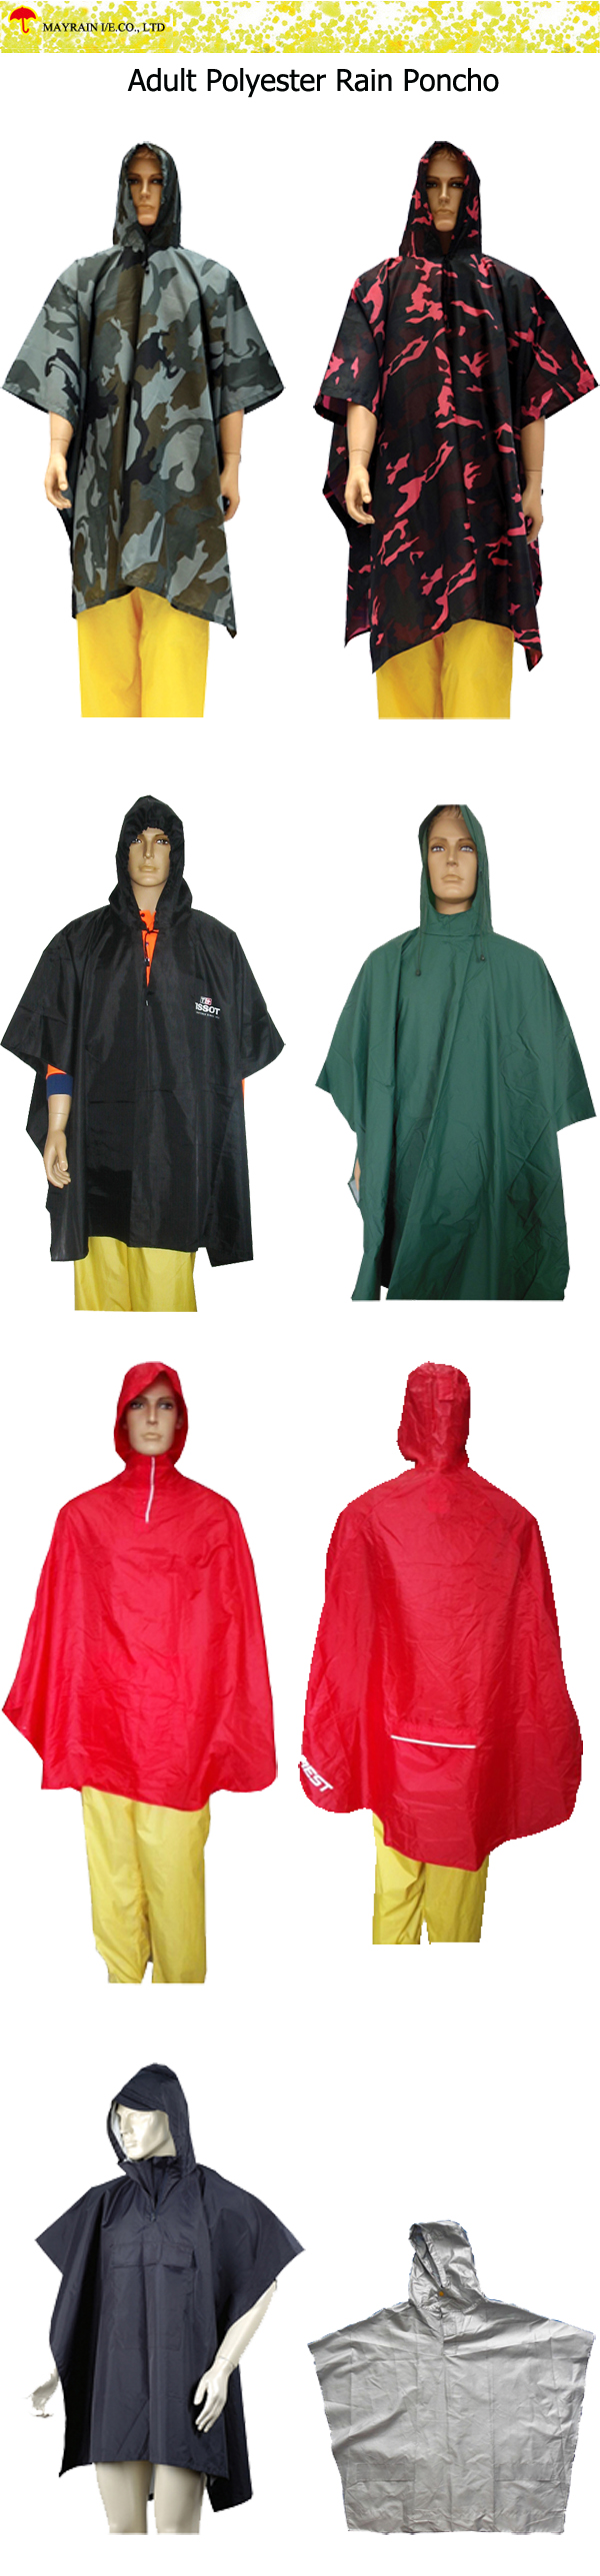 Adult Polyester Rain Poncho